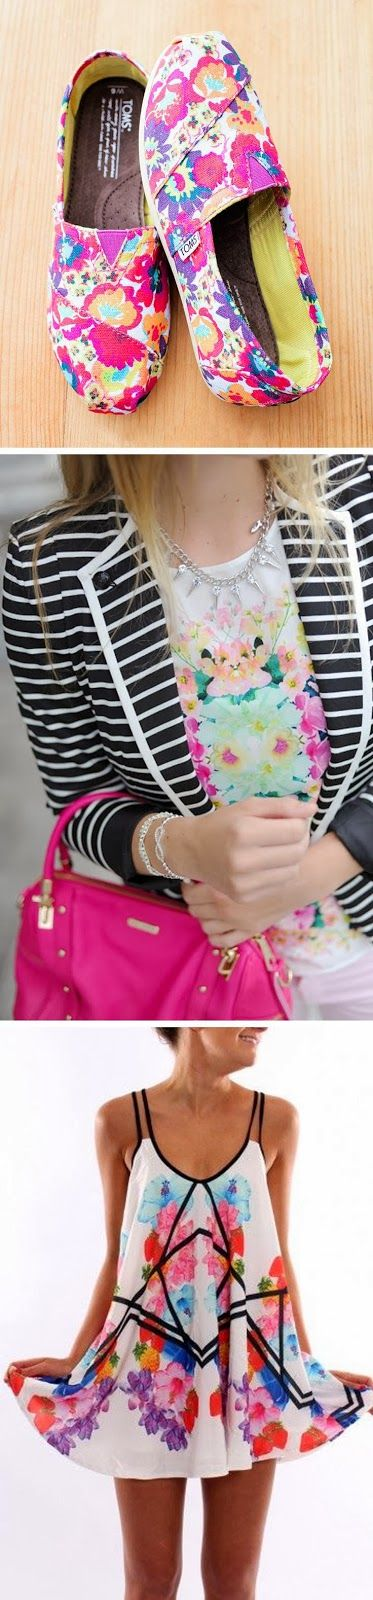 Floral TOMS   //   Striped Blazer + Floral Top   //   Floral Dress